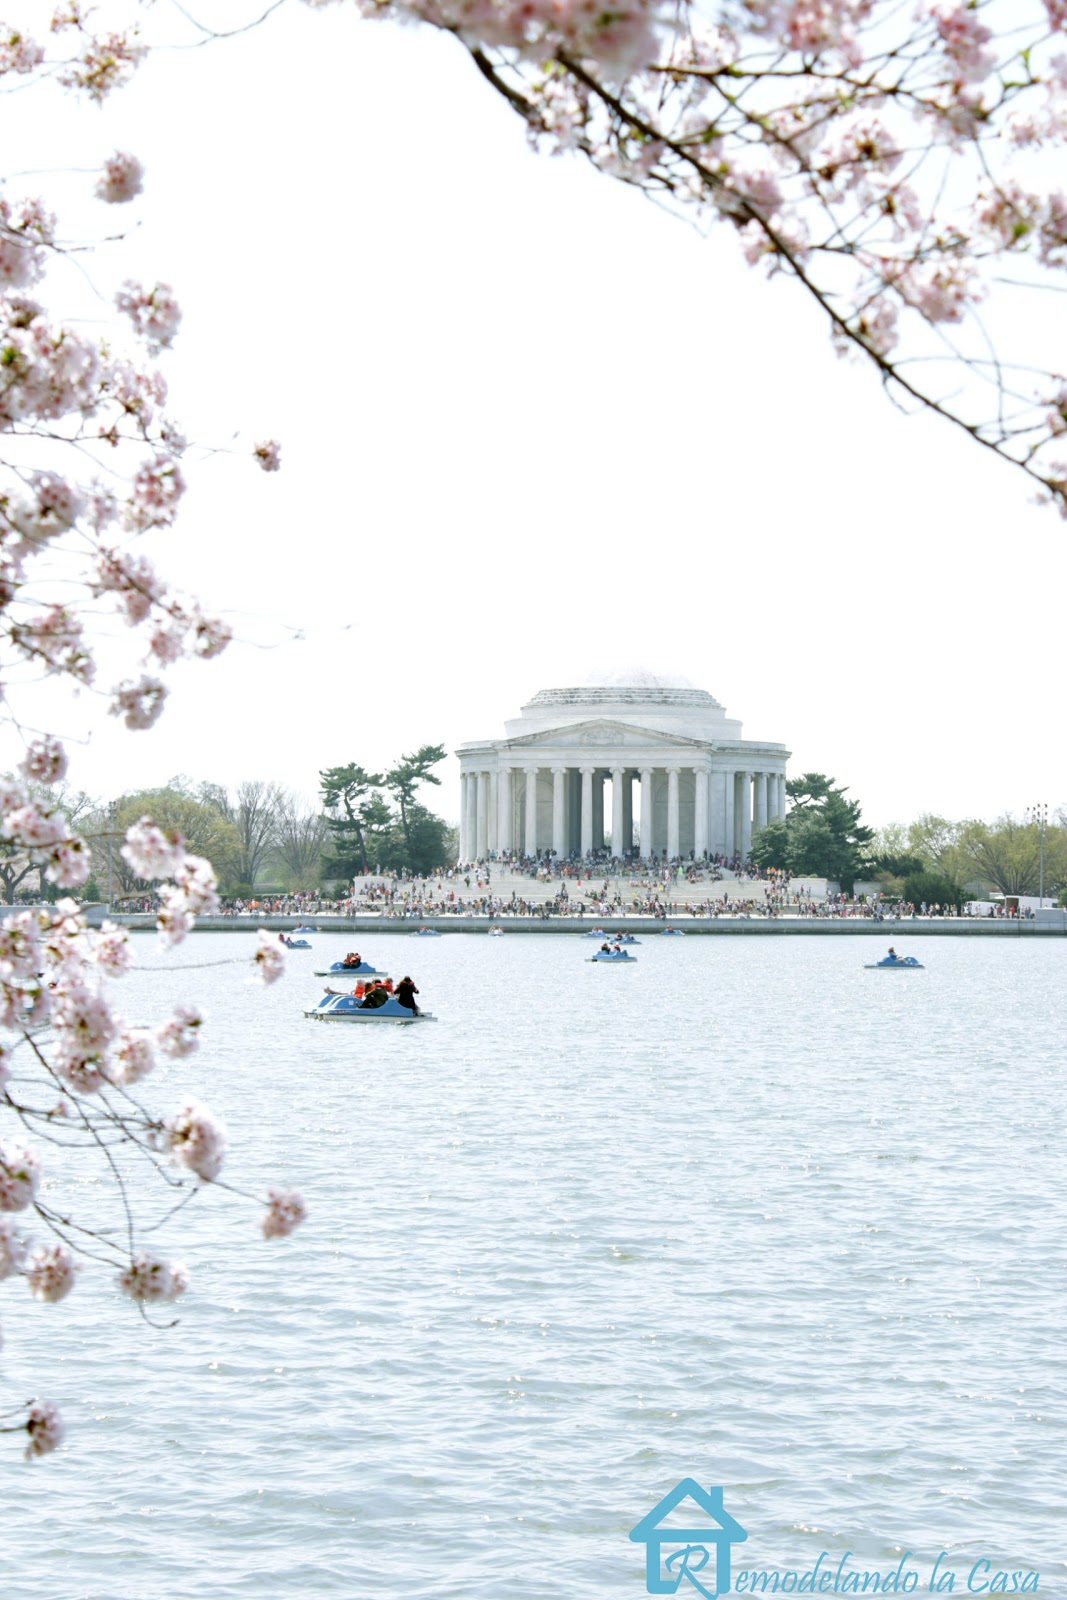 Cherry blossom festival at washington D.C. overlooking the Jefferson Memorial past the tidal basin